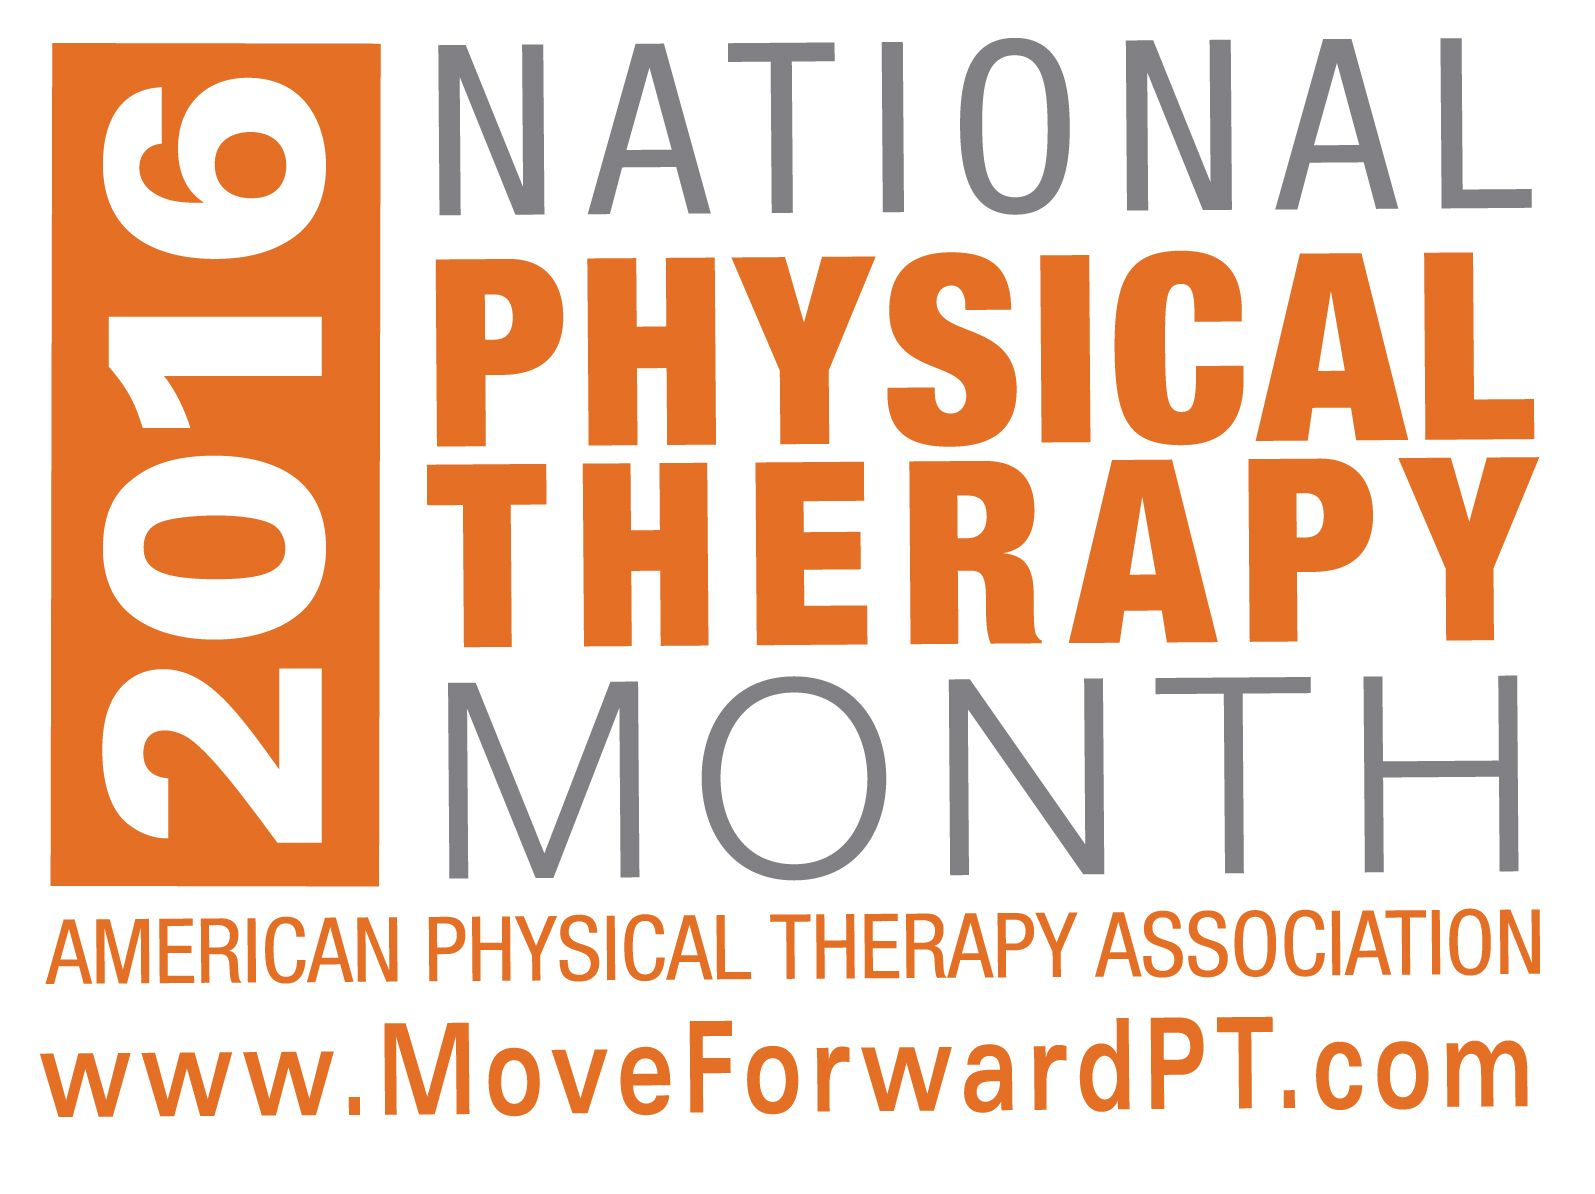 National Physical Therapy Month 2016 Logo Orange (With